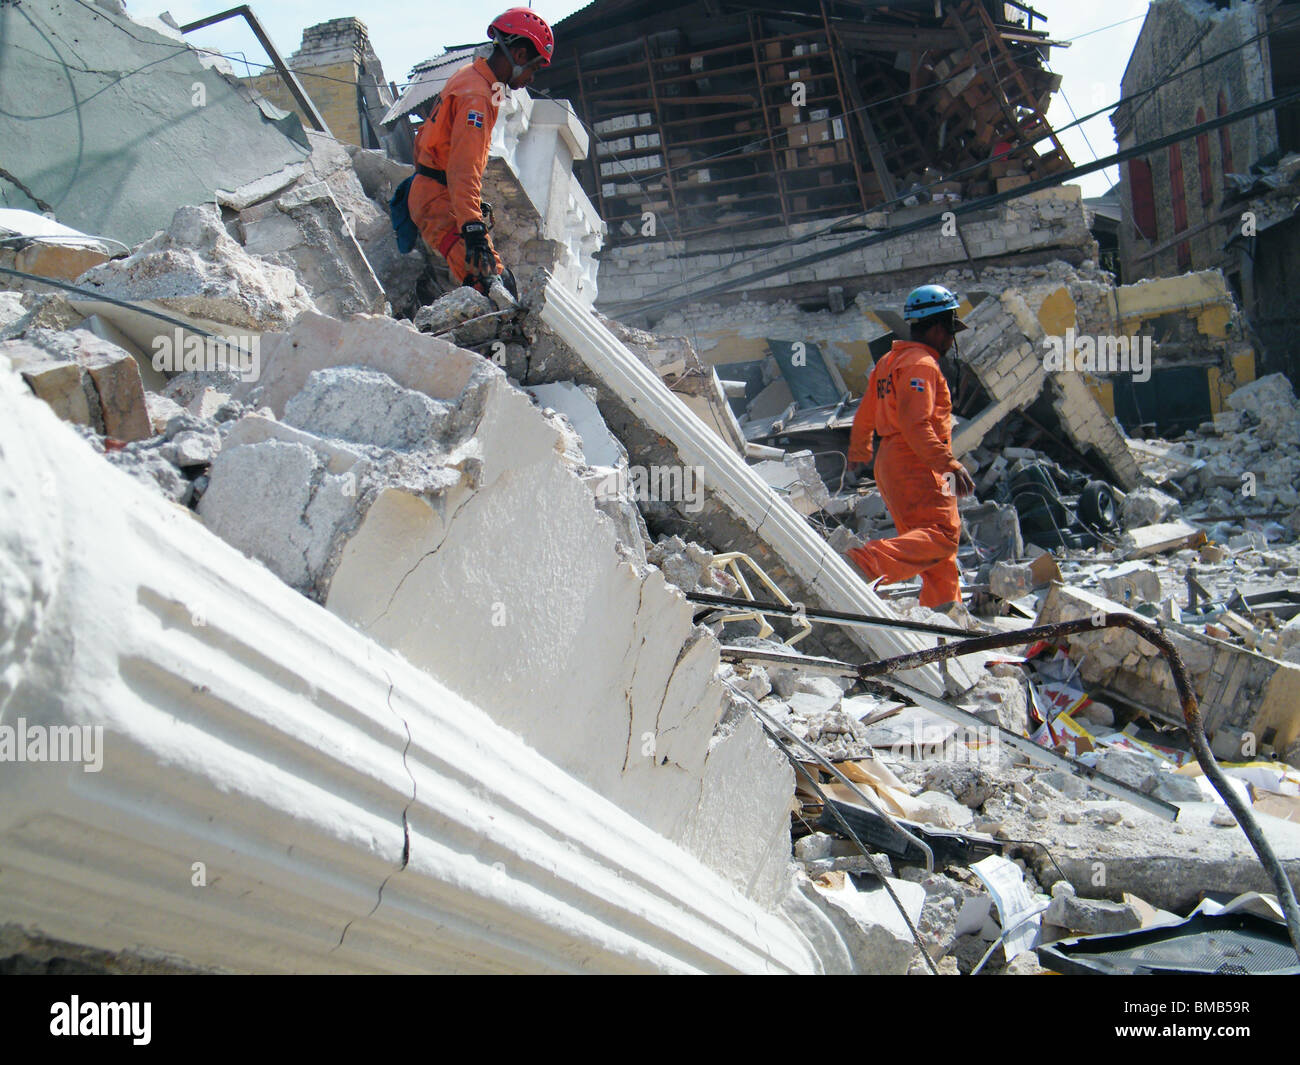 Members of the Dominican Defensa Civil search for survivors in the rubble in Port au Prince after the Haiti earthquake - Stock Image